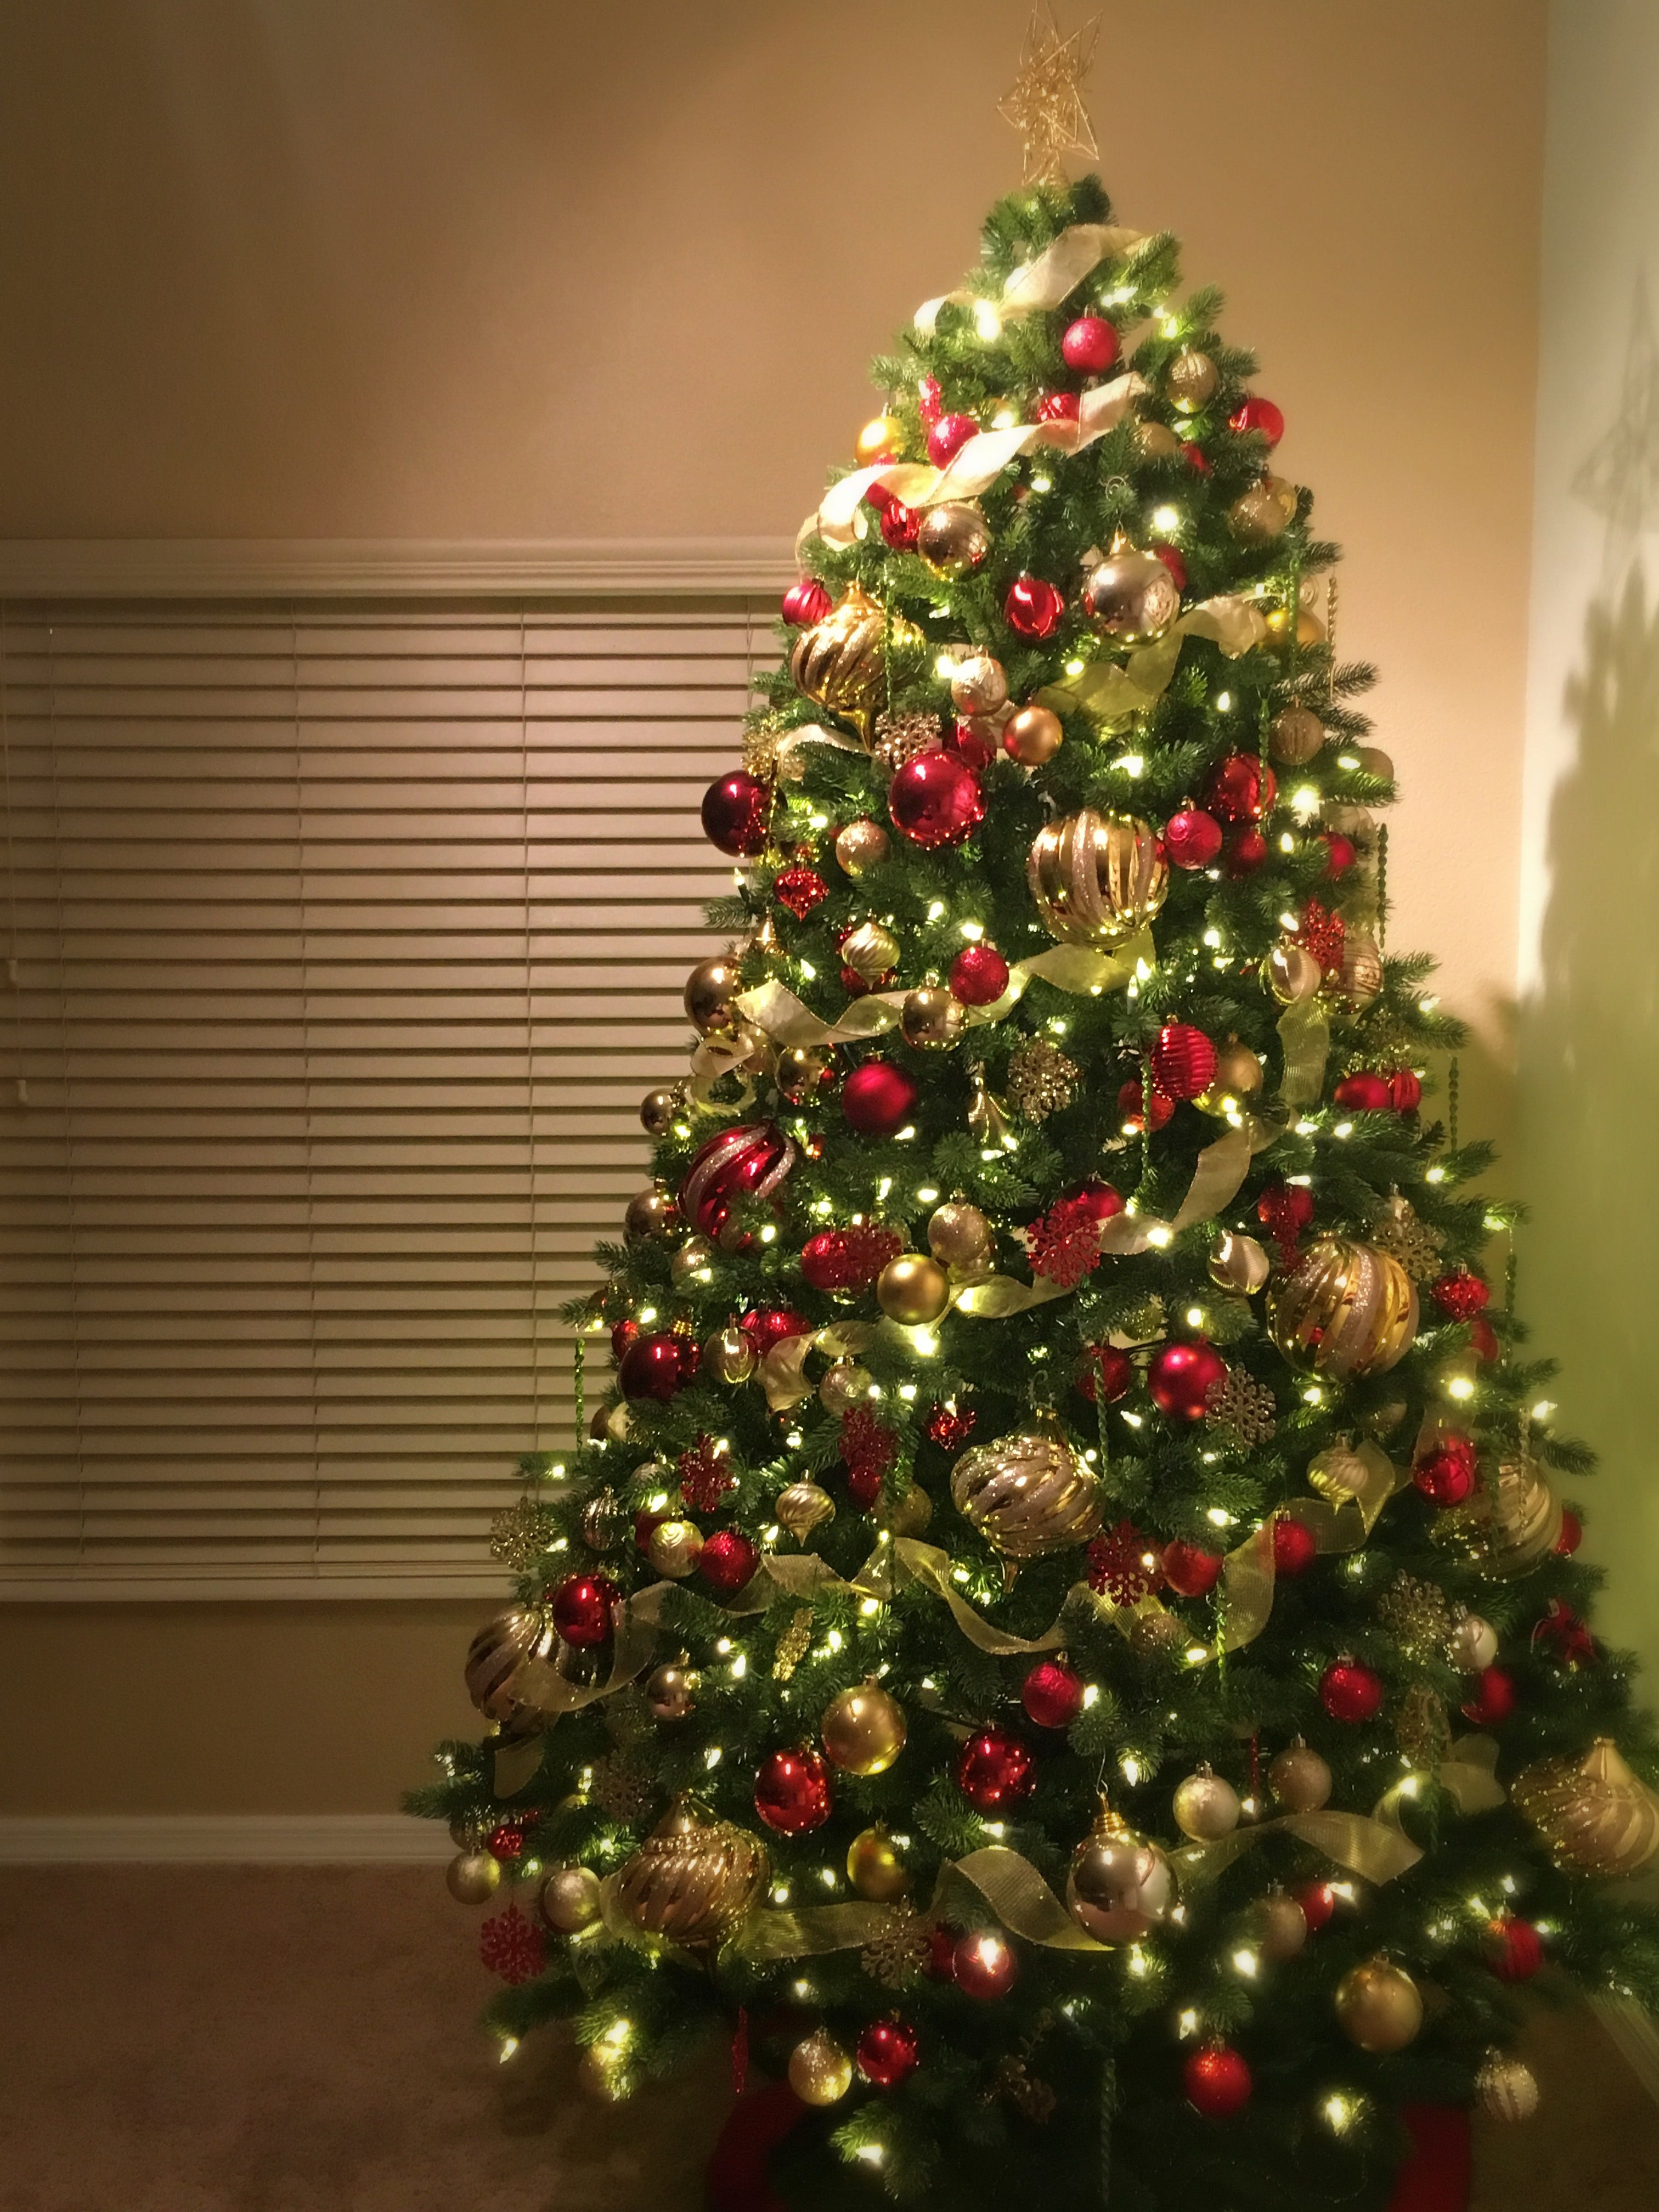 My Classic Christmas Tree - Red, Green and Gold | Holiday ...